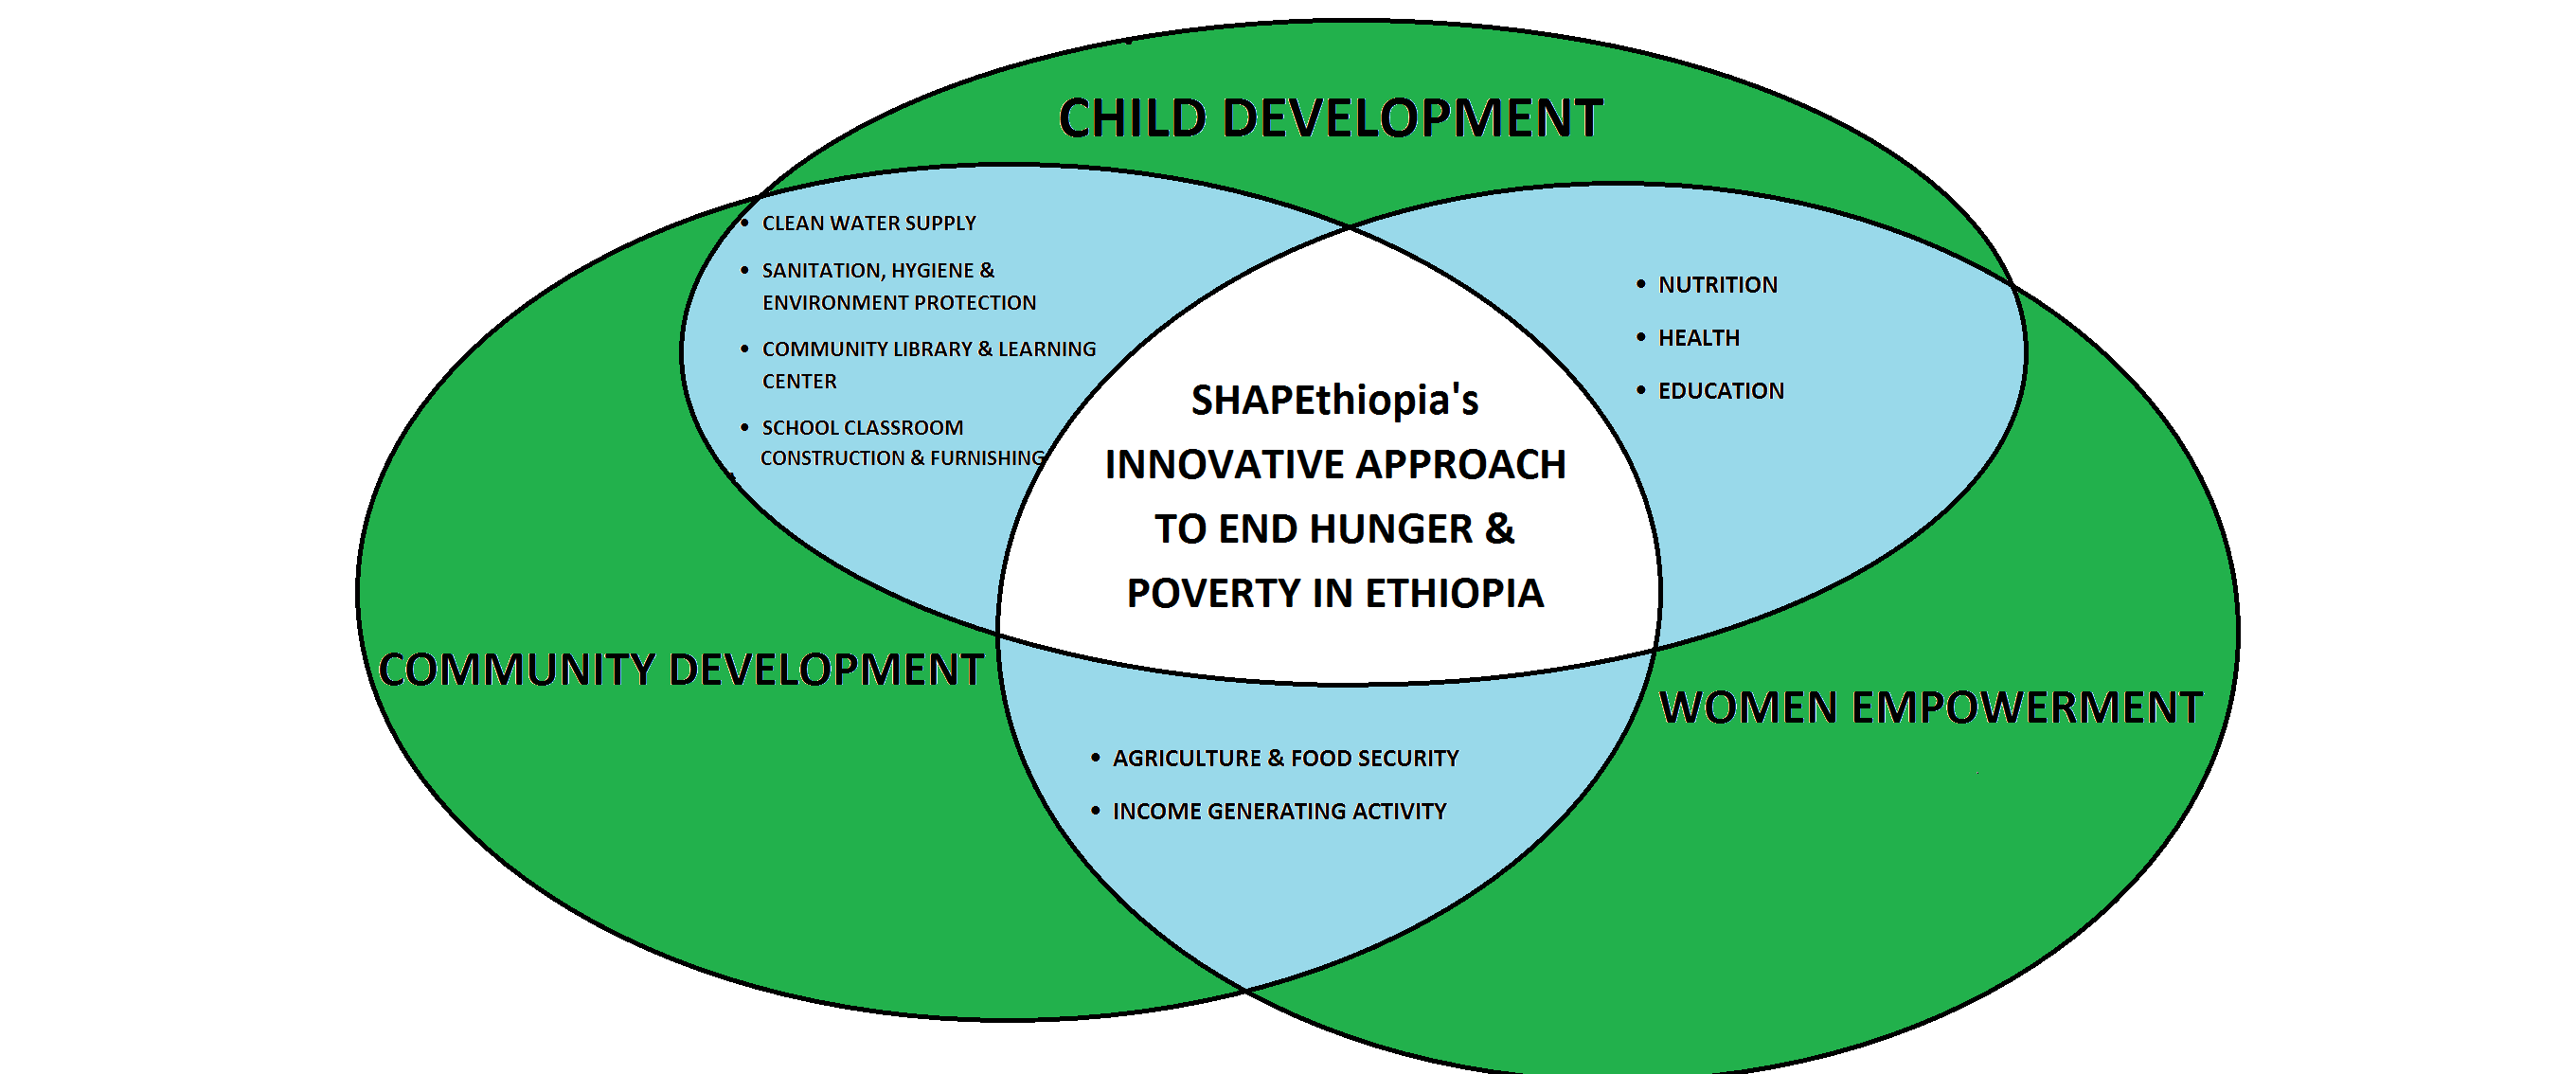 SHAPEthiopia's Innovative Approach